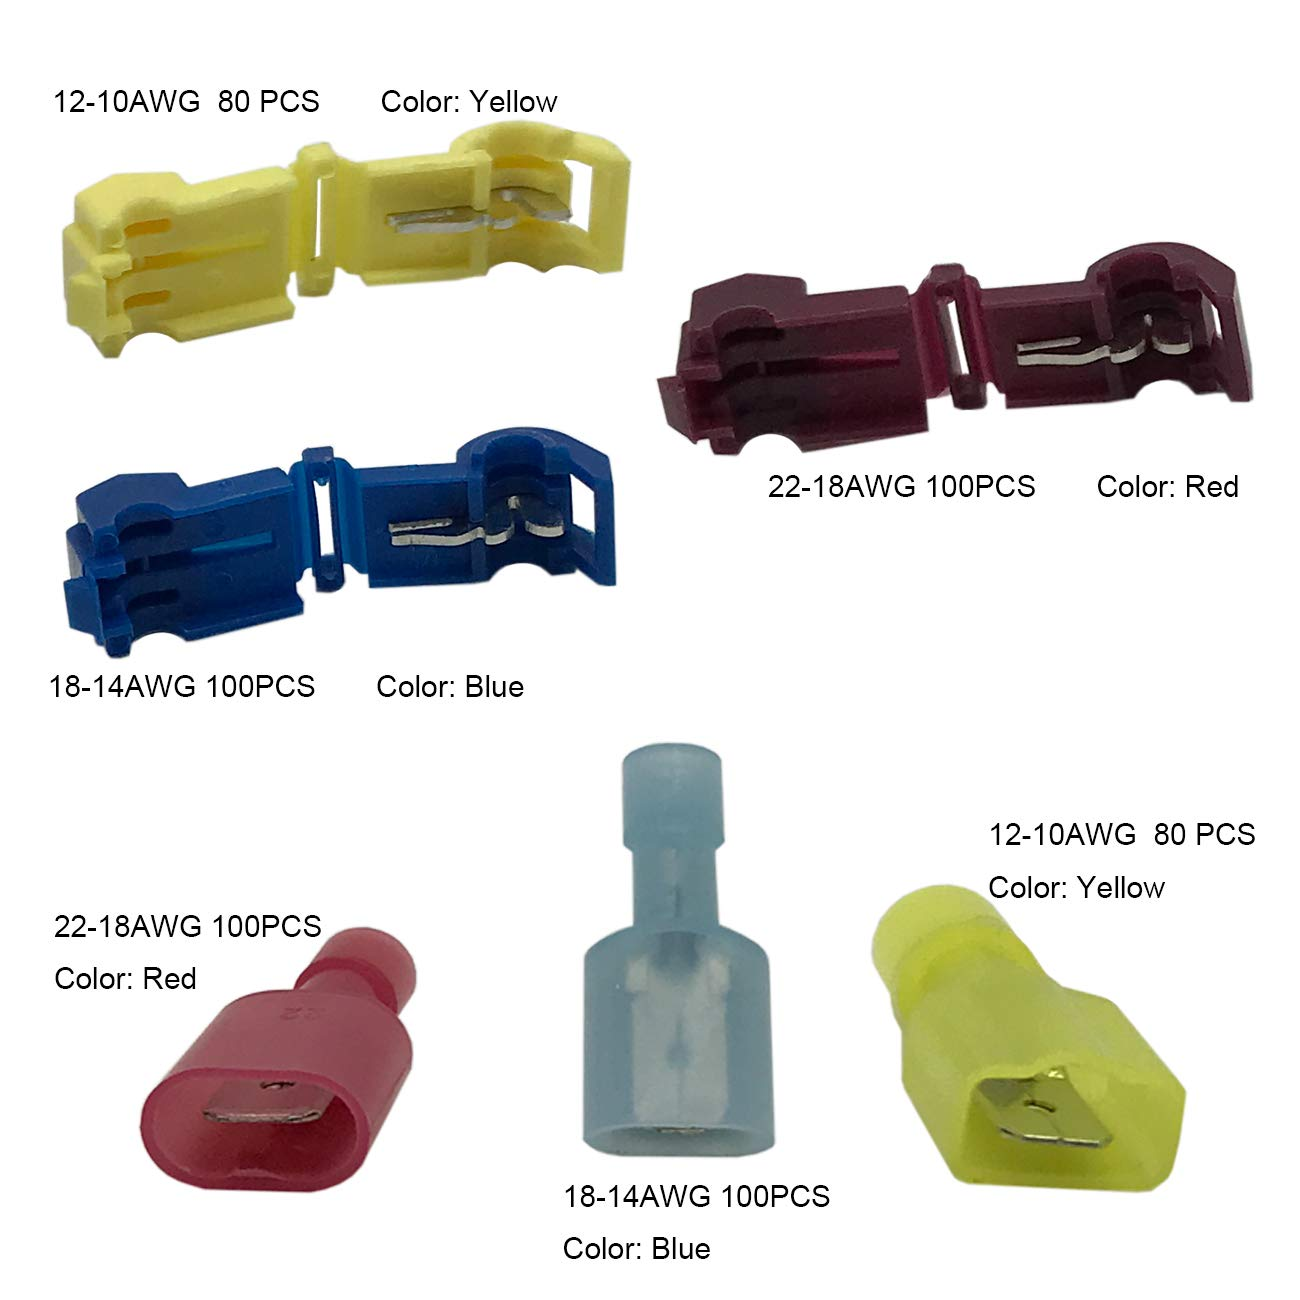 560 T-tap Wire Connectors - Nylon Fully Insulated Male Spade Terminals, Electrical Quick Disconnect Splice Wire Terminals by IRHAPSODY (Image #3)